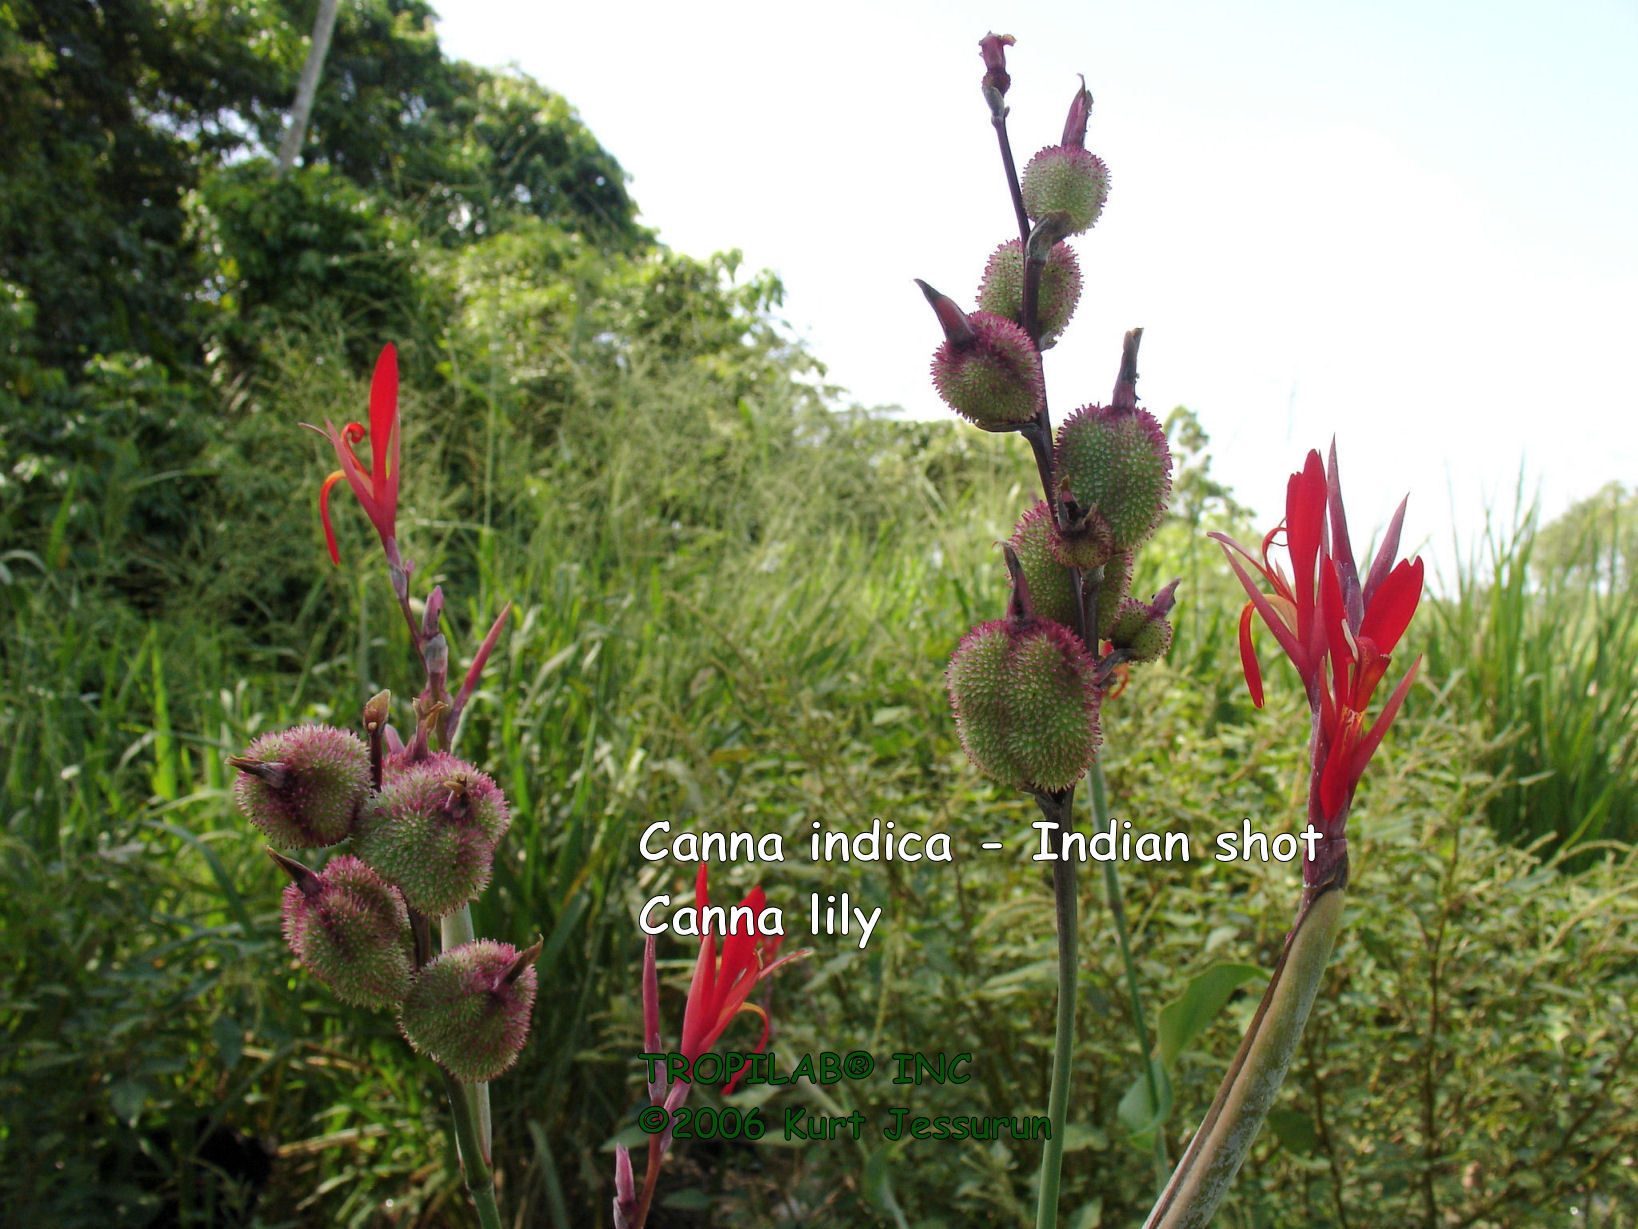 Red Canna indica - Indian shot